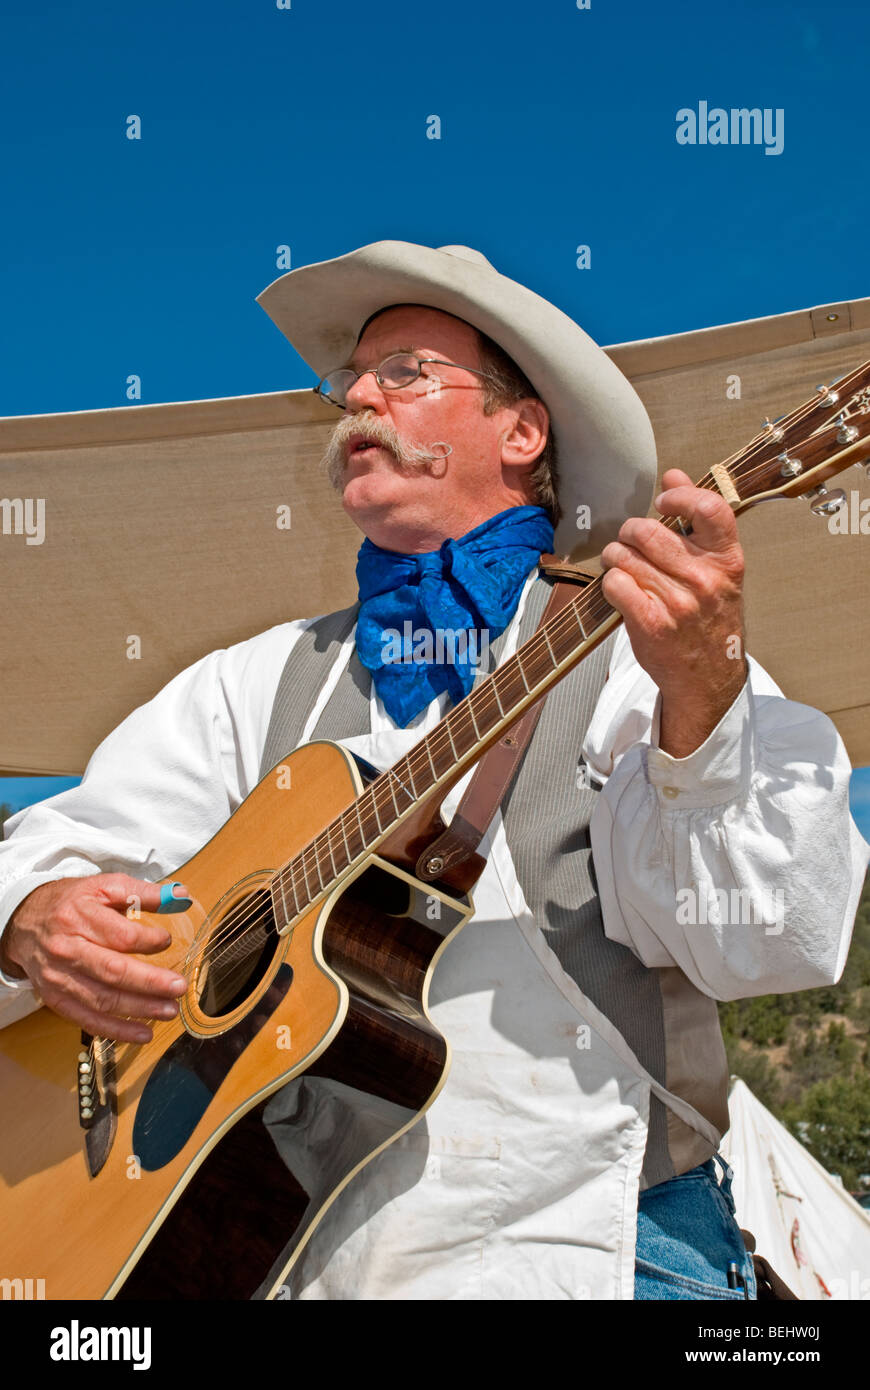 A country-western singer plays popular old western tunes ...